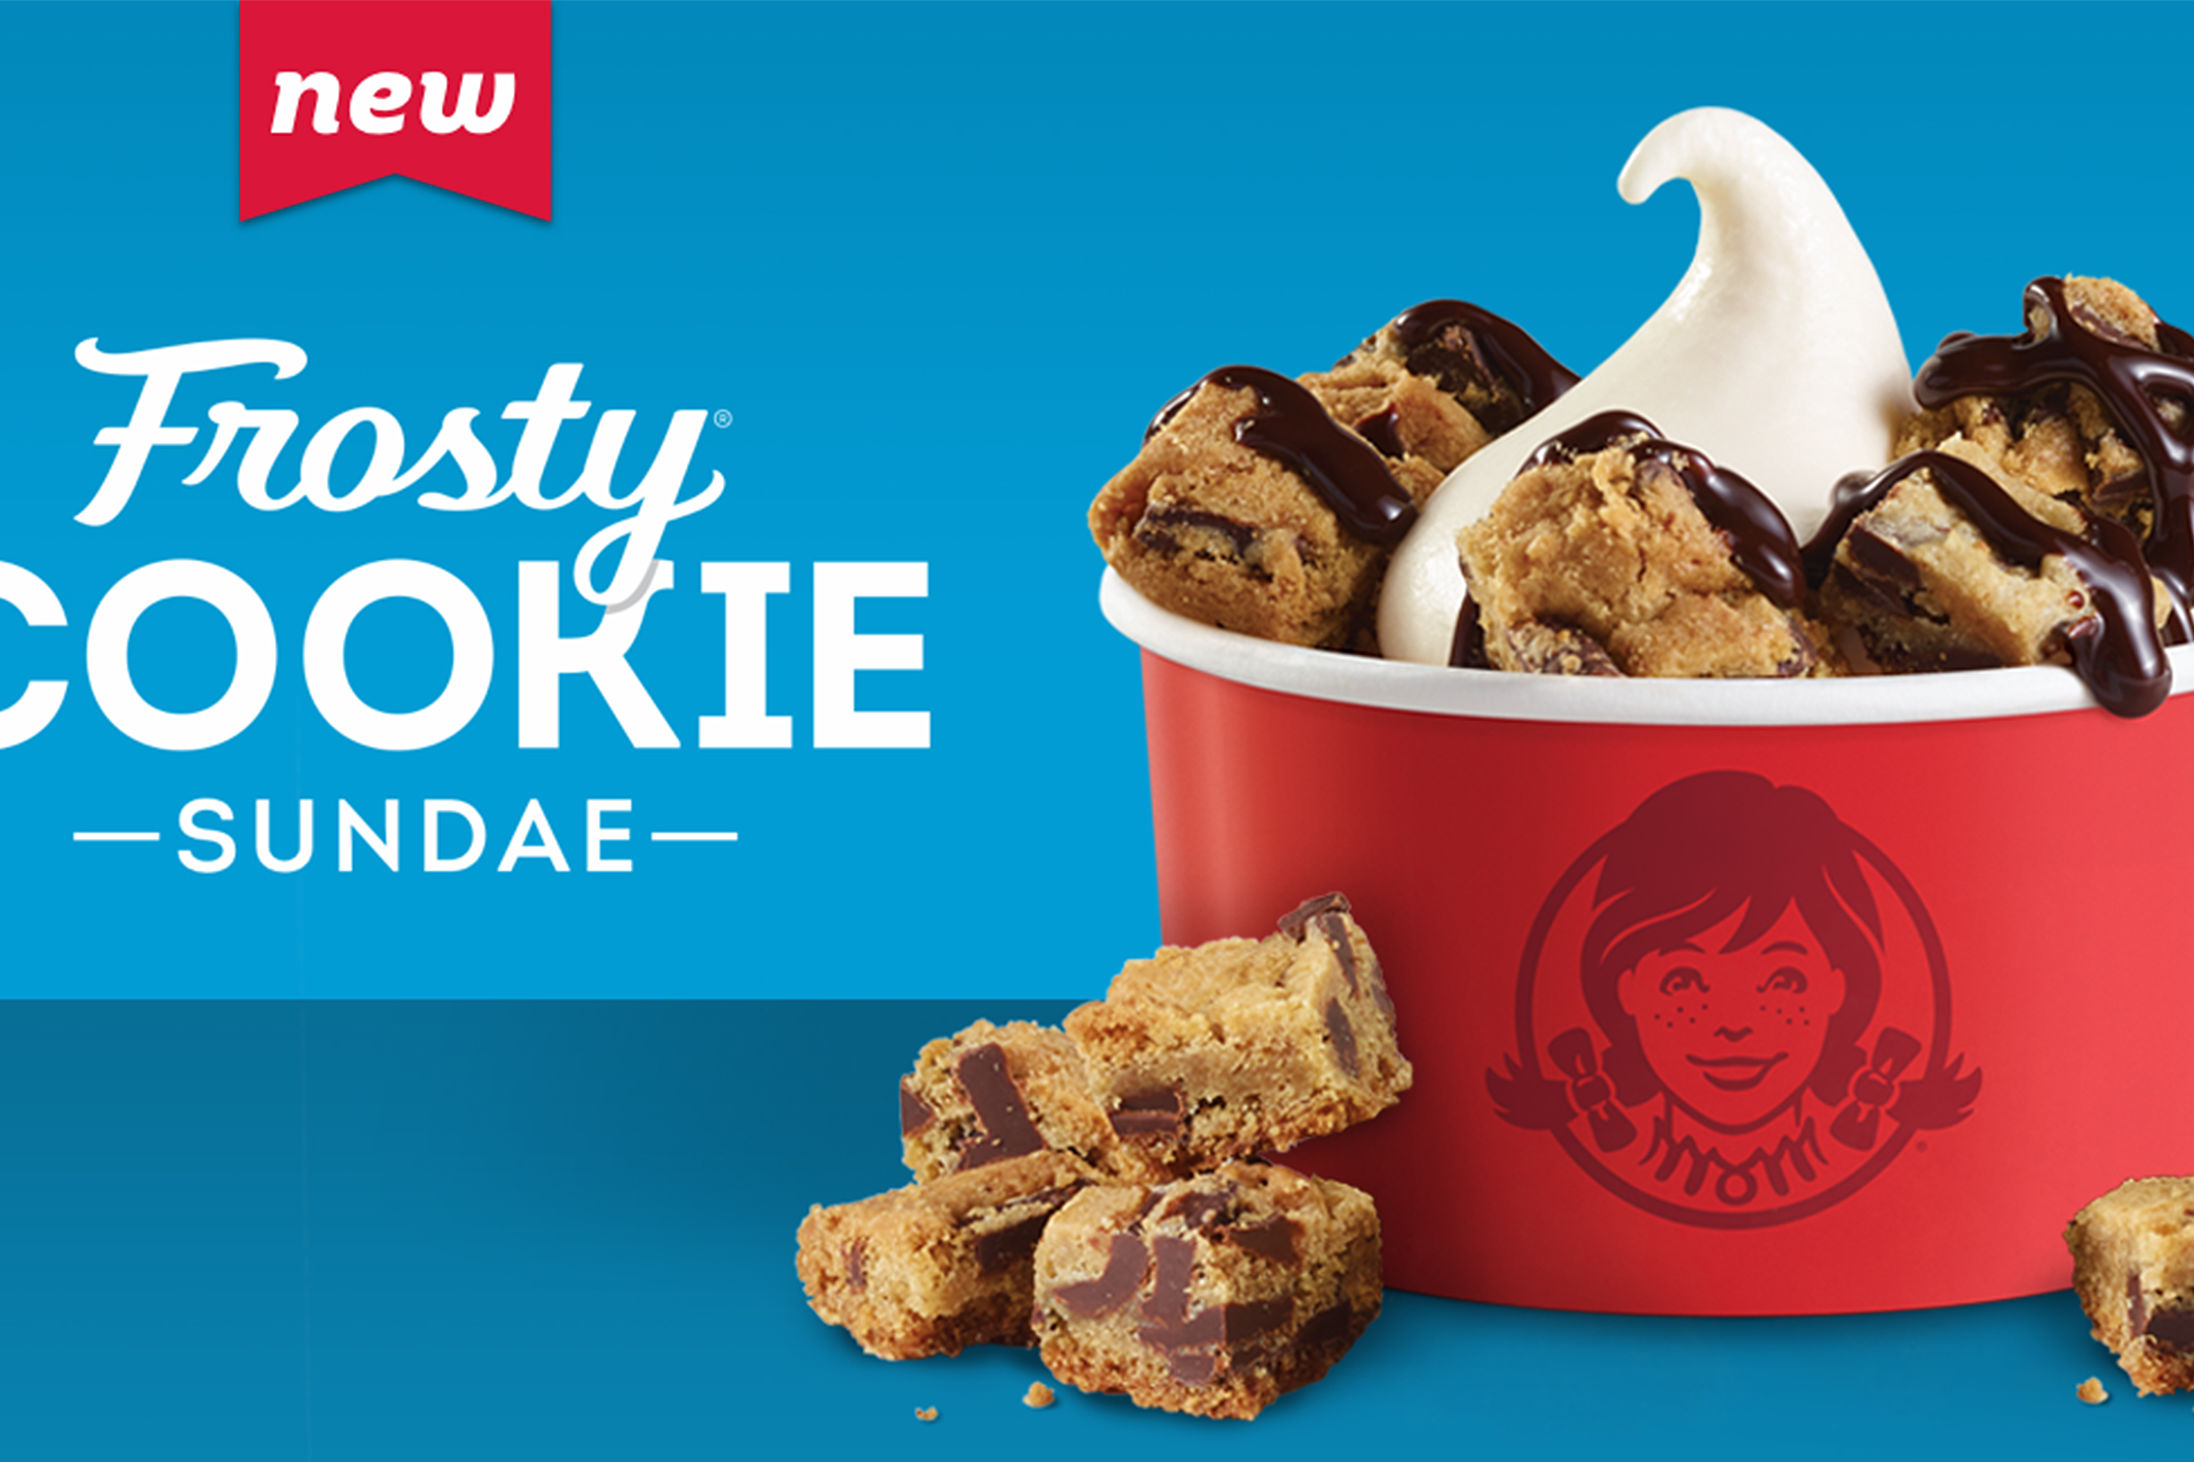 Wendy's Is Now Selling Their Signature Frosty in Cookie Sundae Form